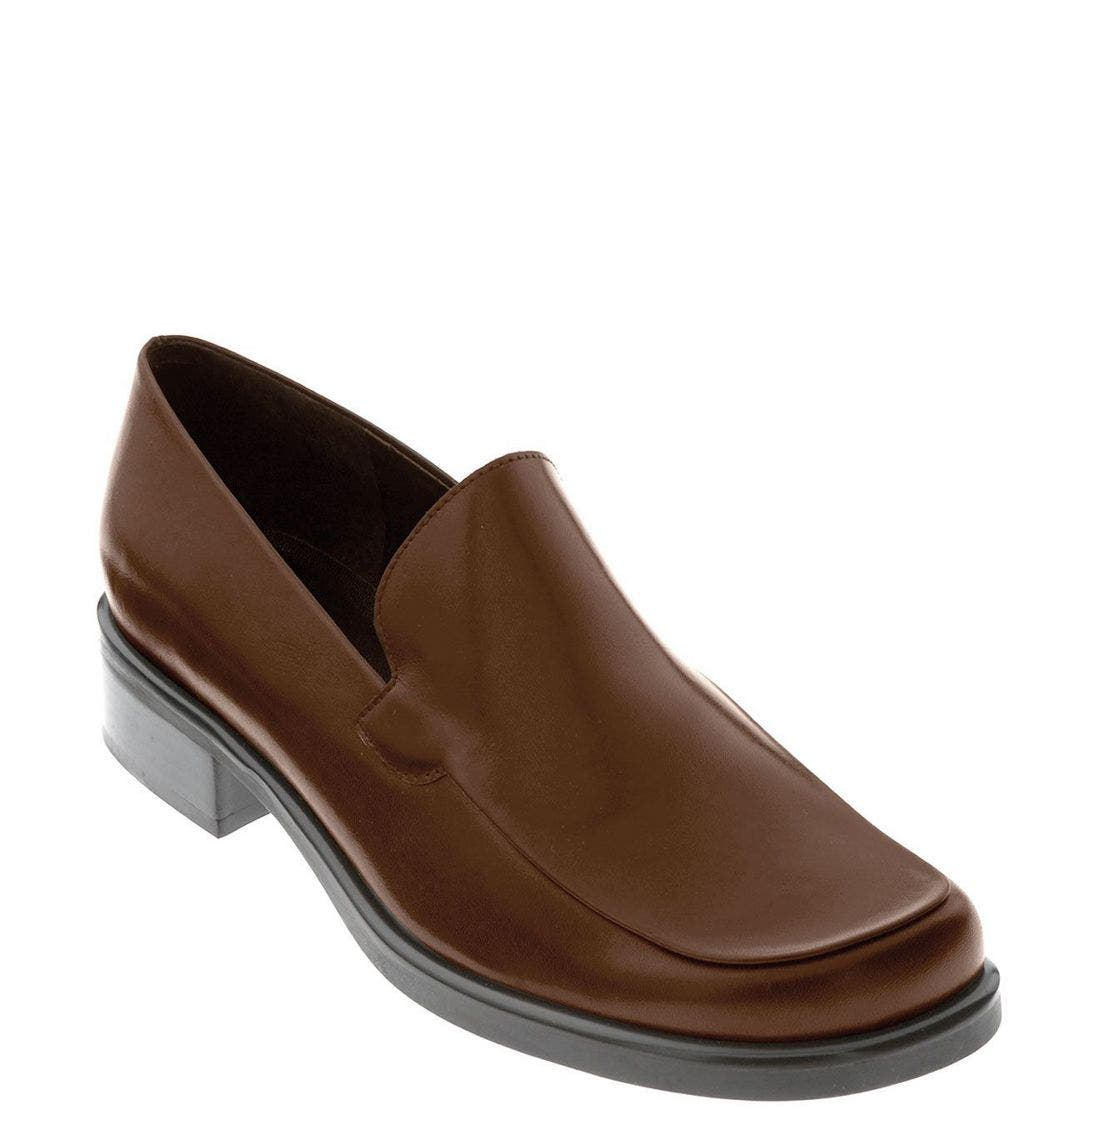 Image of Franco Sarto Bocca Plain Toe Slip-On Loafer - Narrow Width